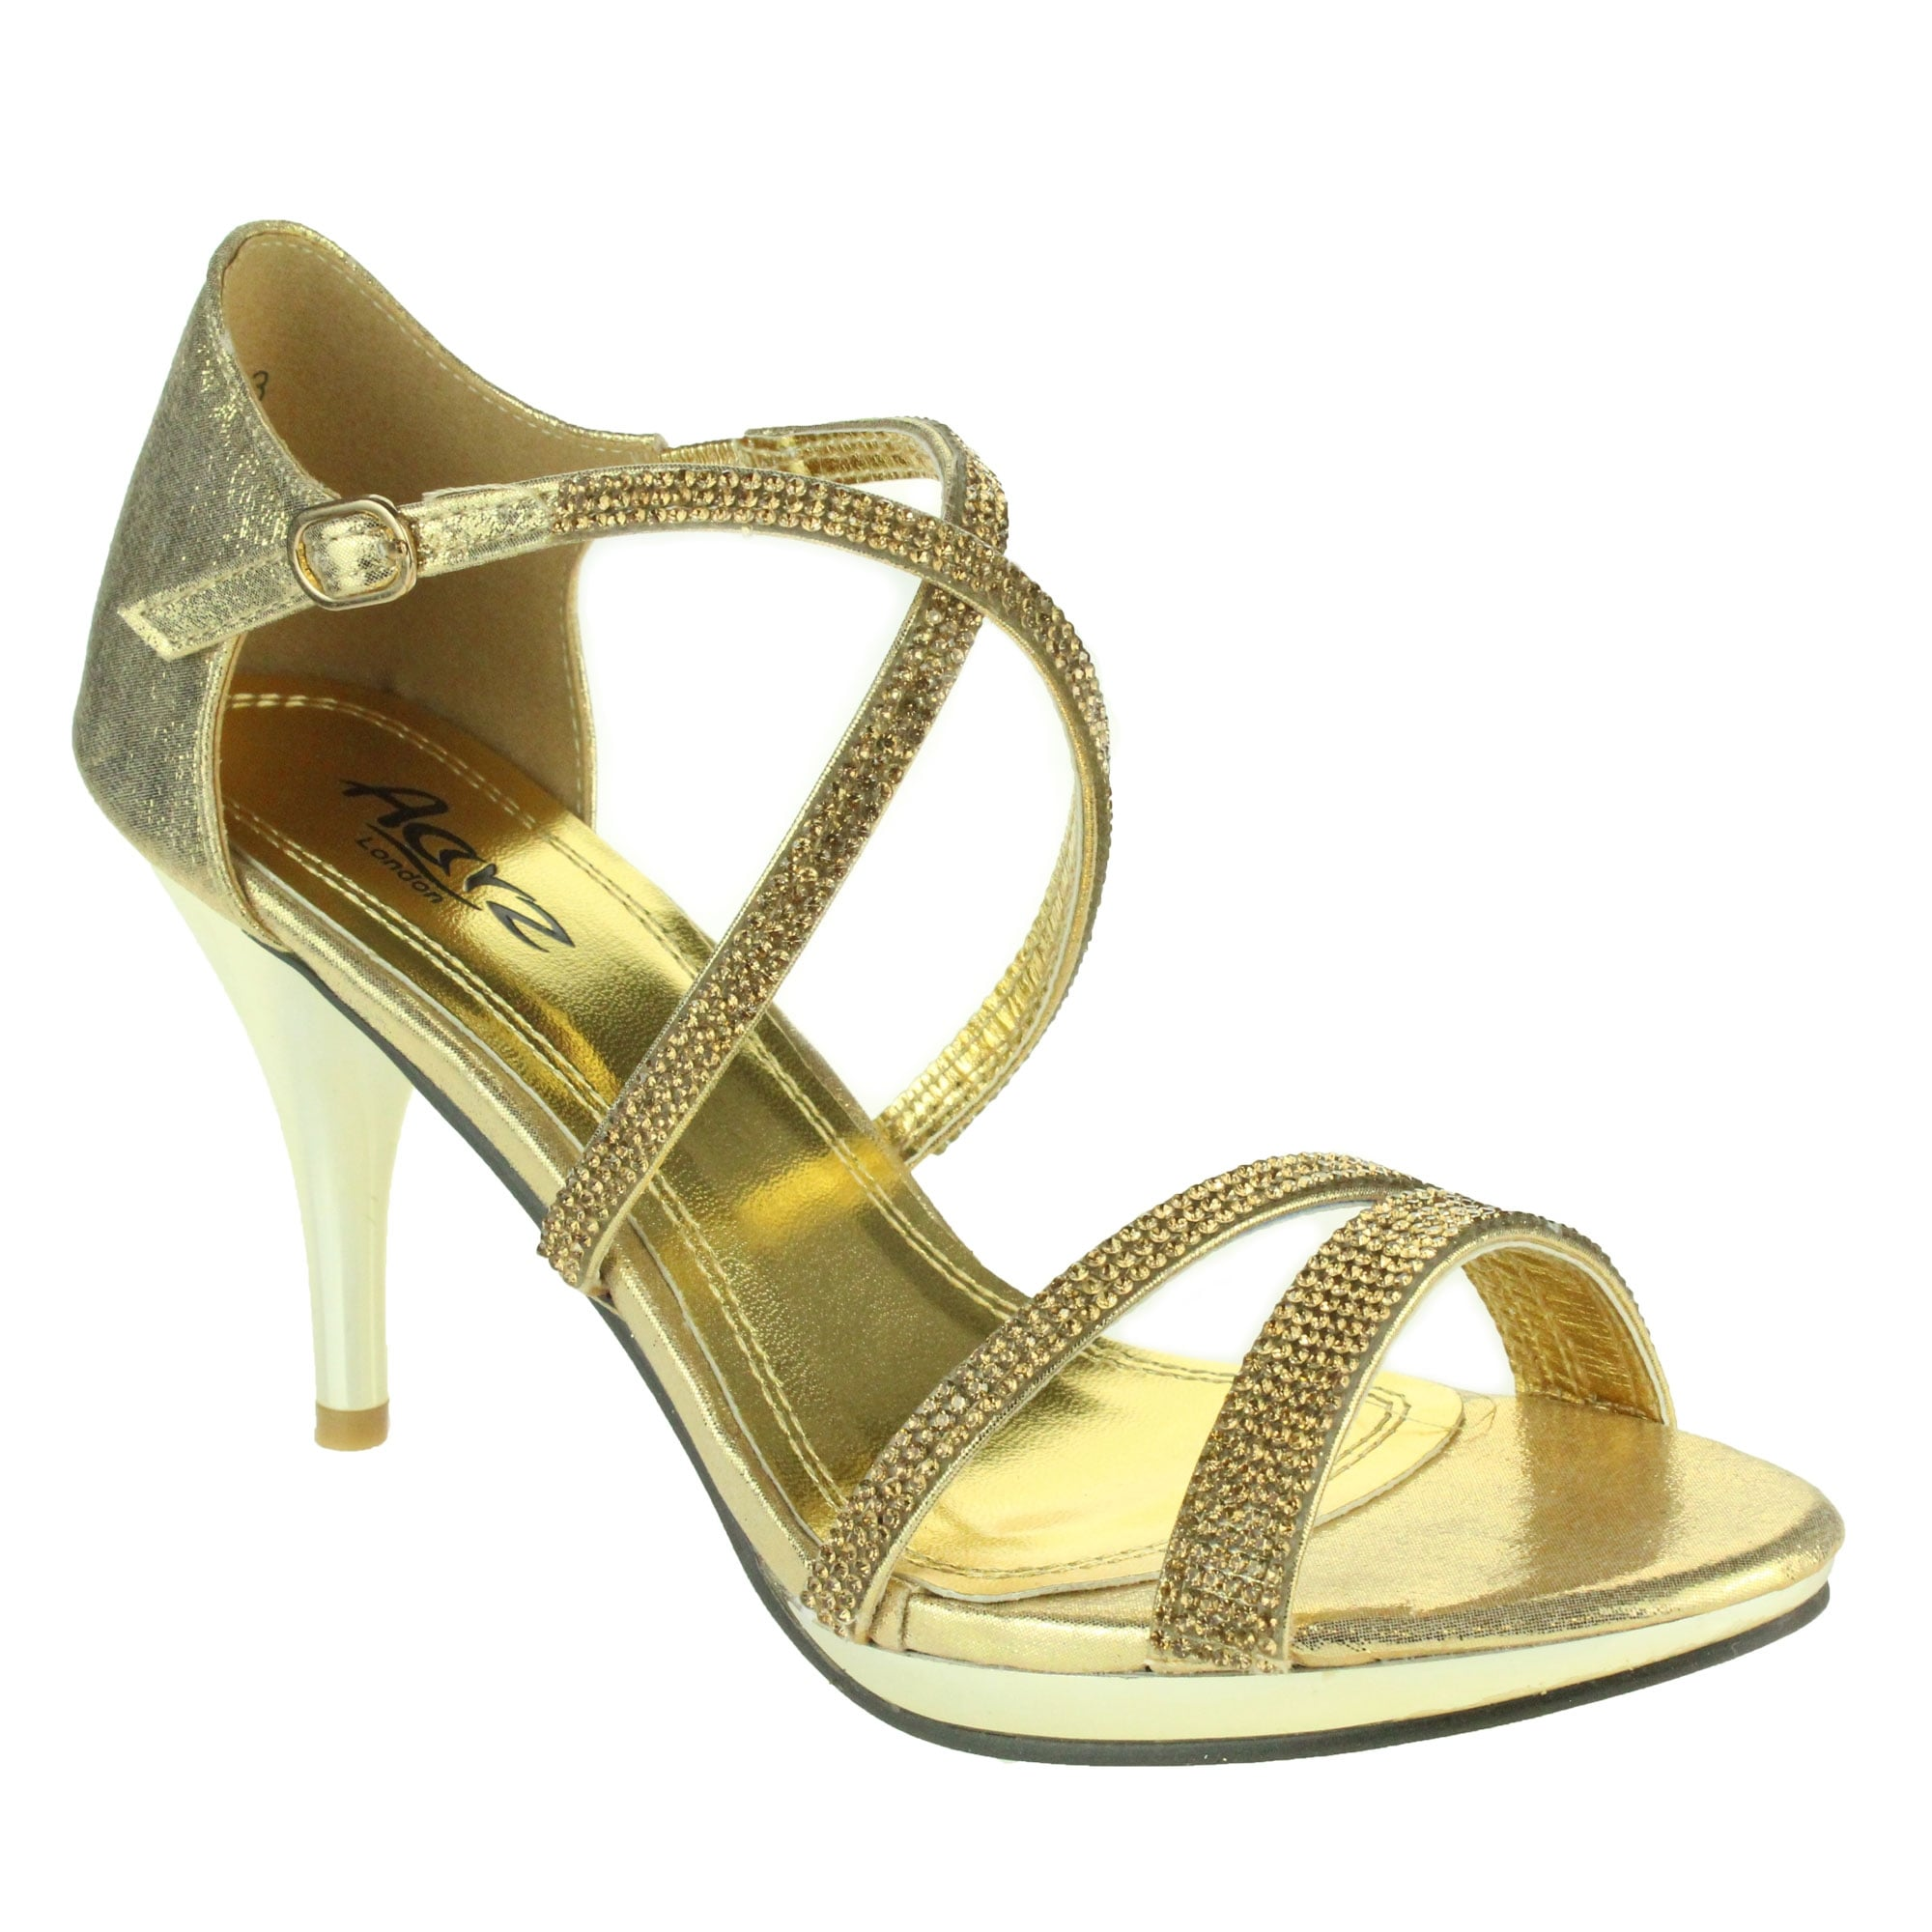 bf069e923b Aarz London Frances- Platform Cross-strap Sandals